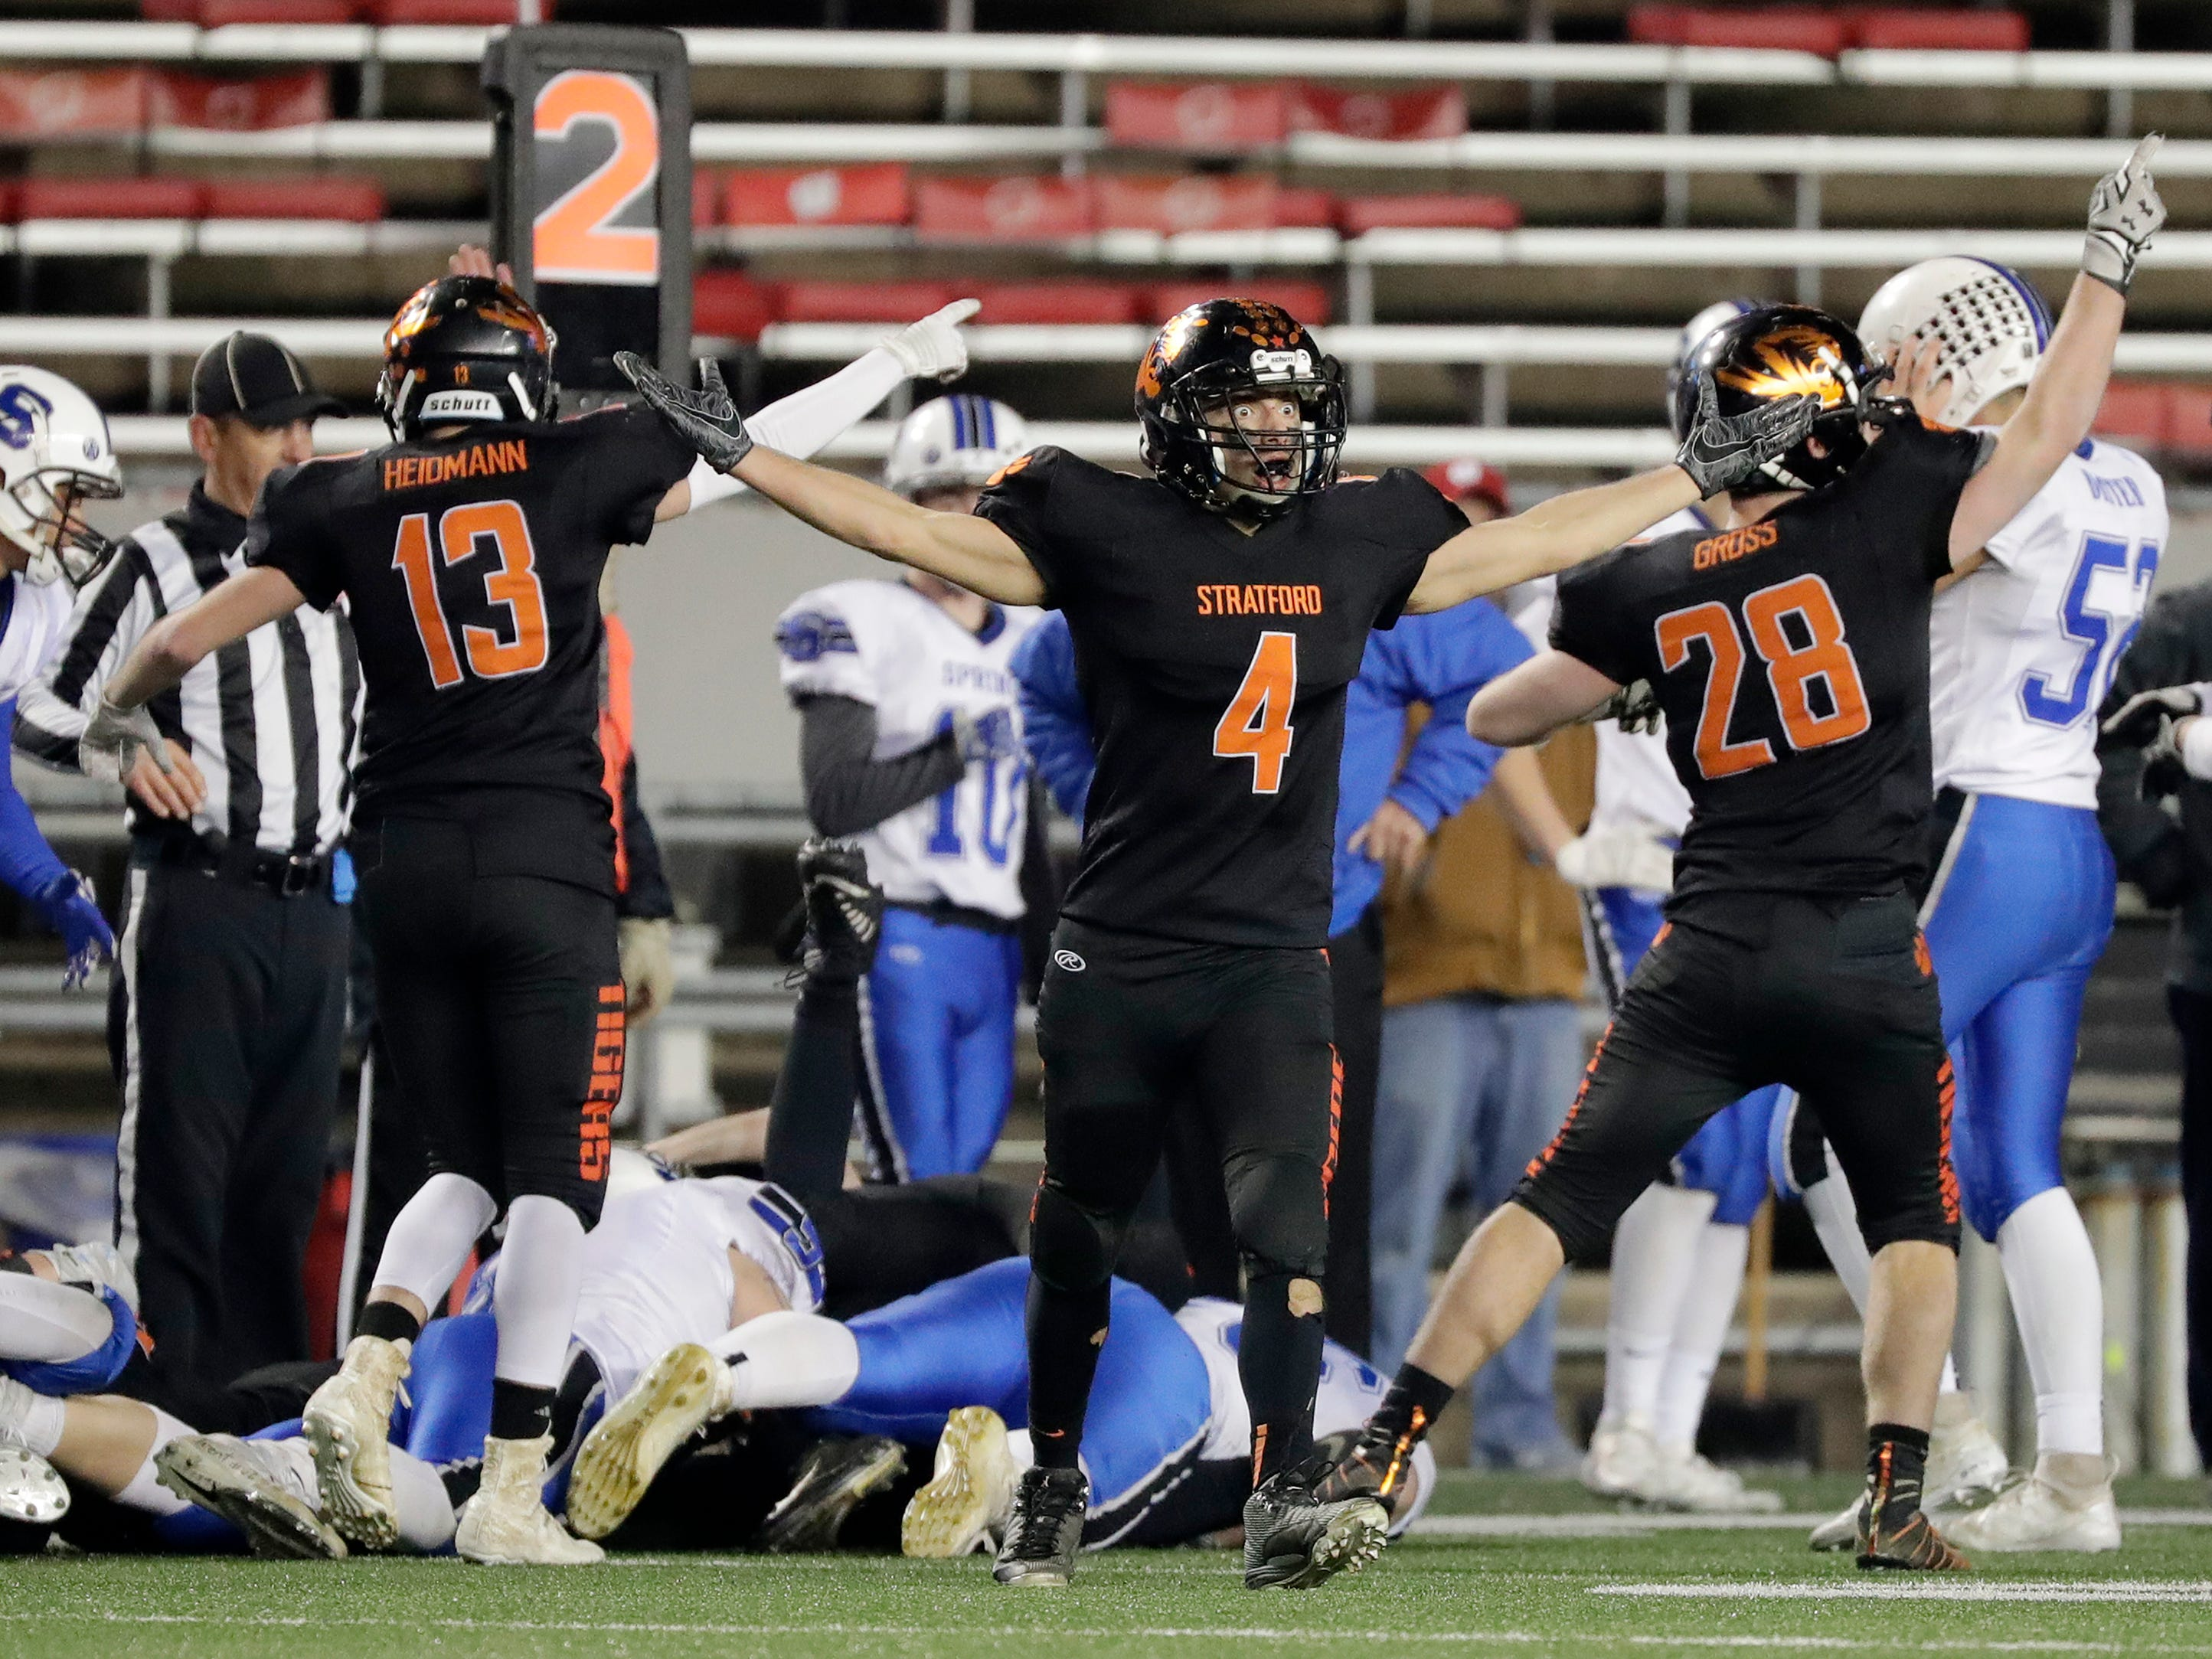 Stratford's Derek Marten (4) reacts after a St Mary's Springs Academy fumble recovered by the Tigers in the WIAA Division 5 championship game at Camp Randall Stadium on Thursday, November 15, 2018 in Madison, Wis.